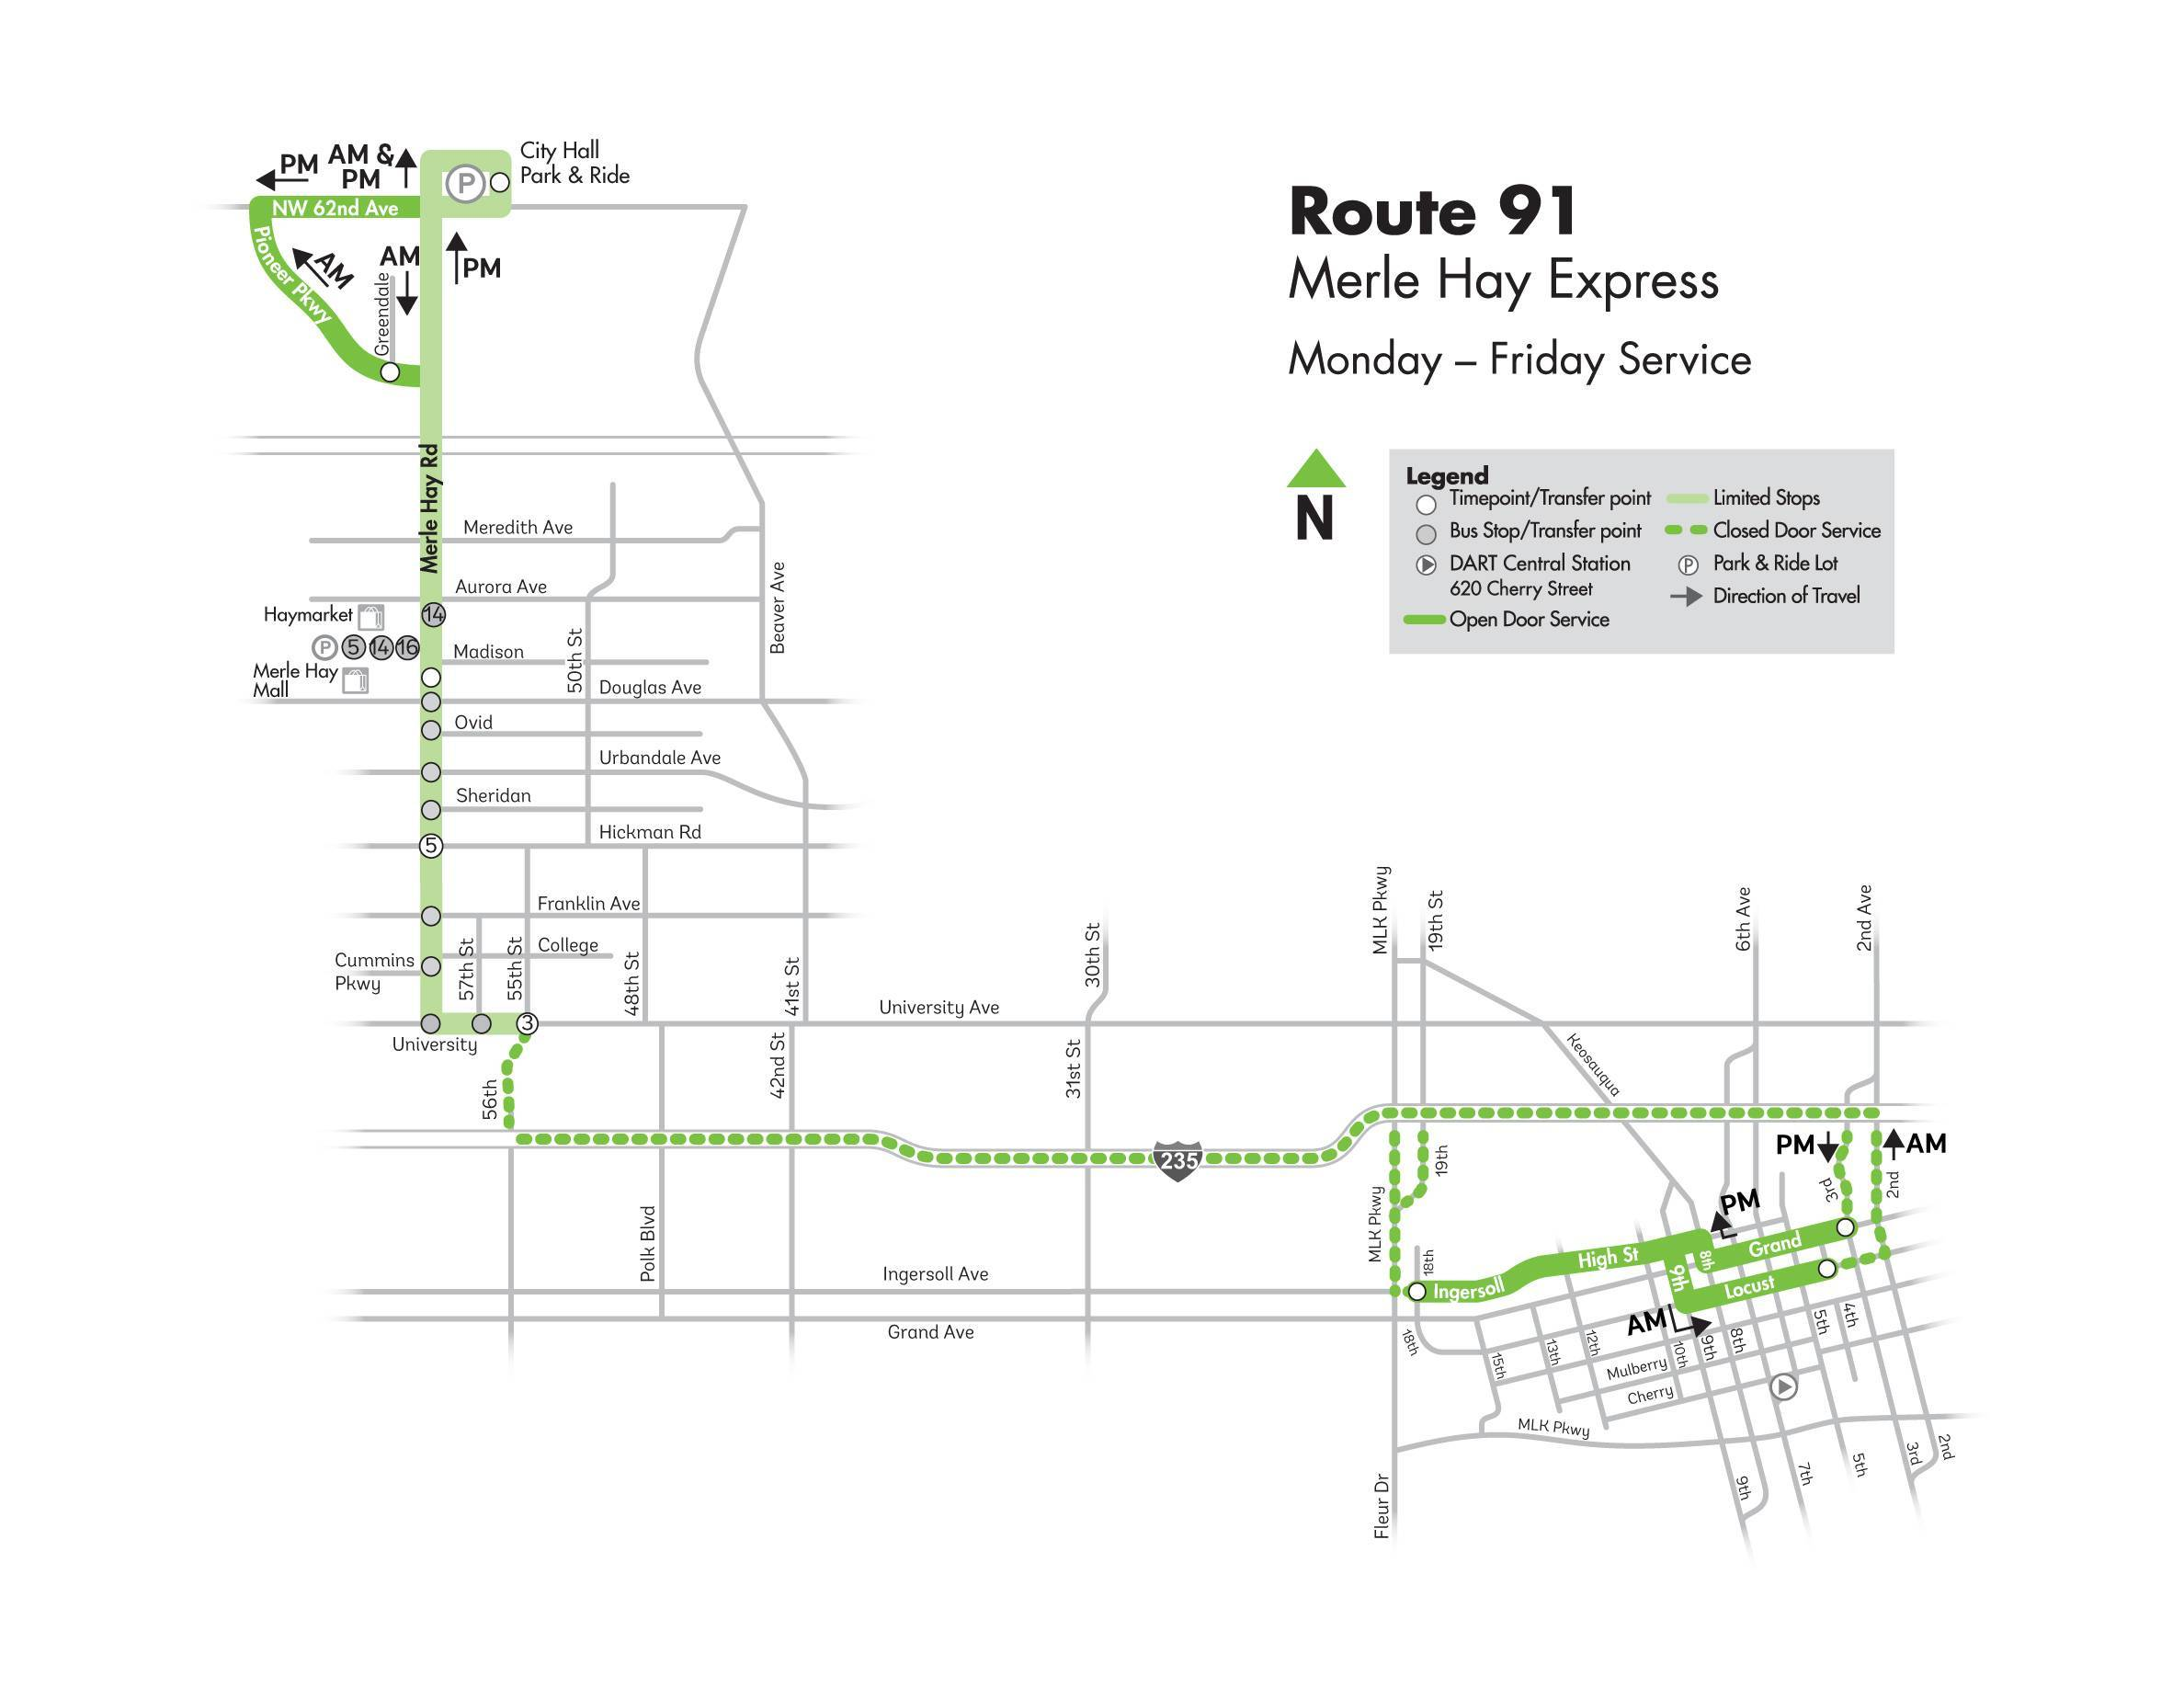 DART Express Route 91 - Merle Hay Express Map